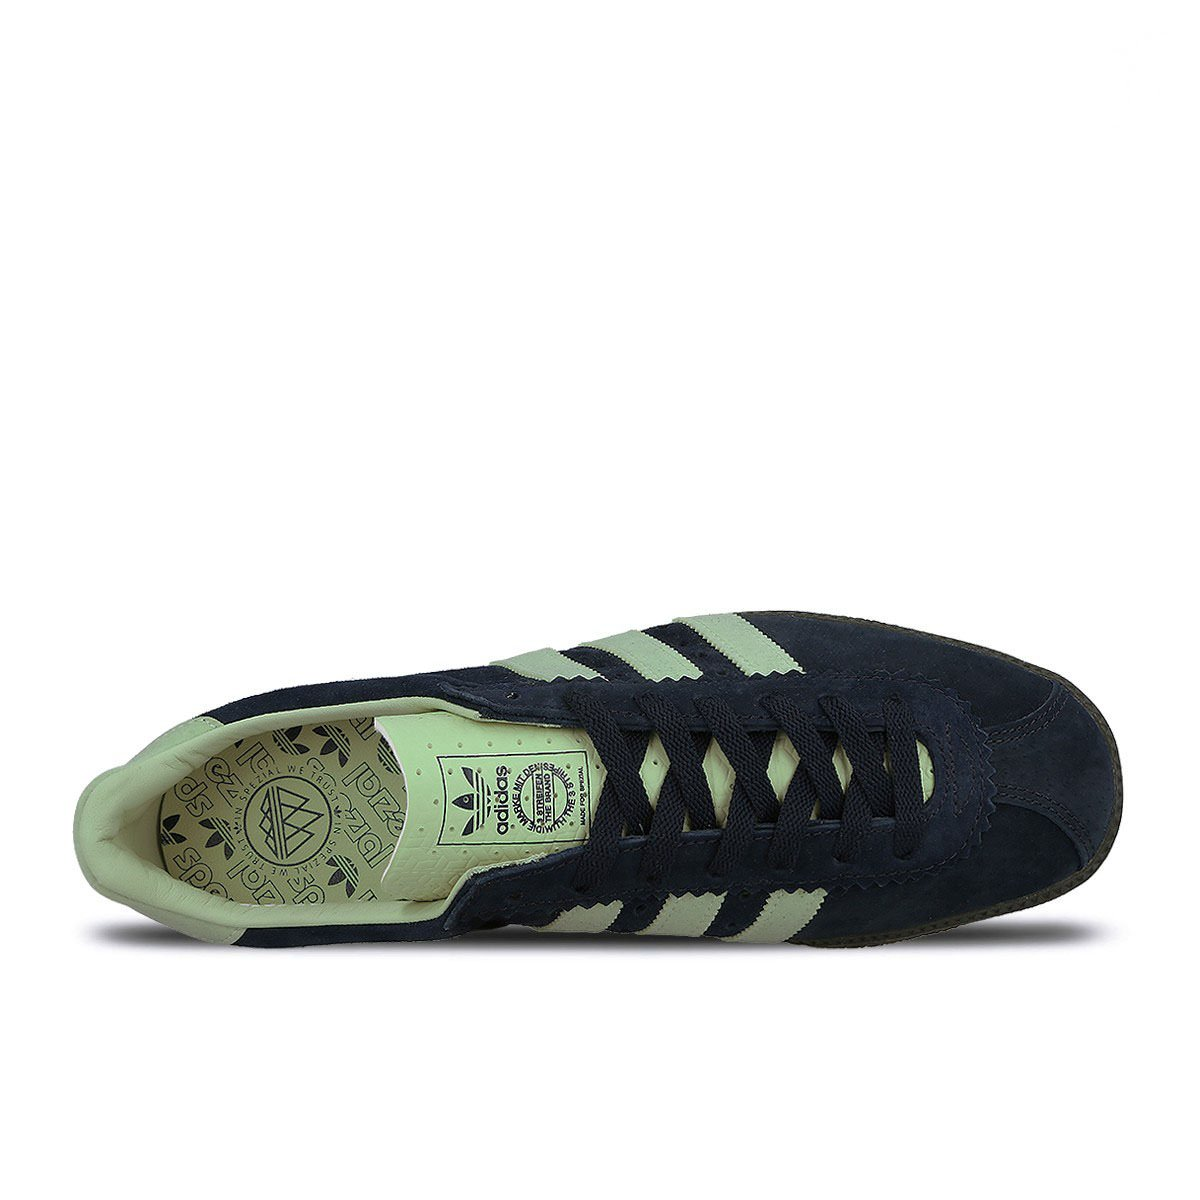 a8d34e15294 adidas Men Padiham SPZL (Navy Night Navy Mist Jade)  Amazon.co.uk  Shoes    Bags